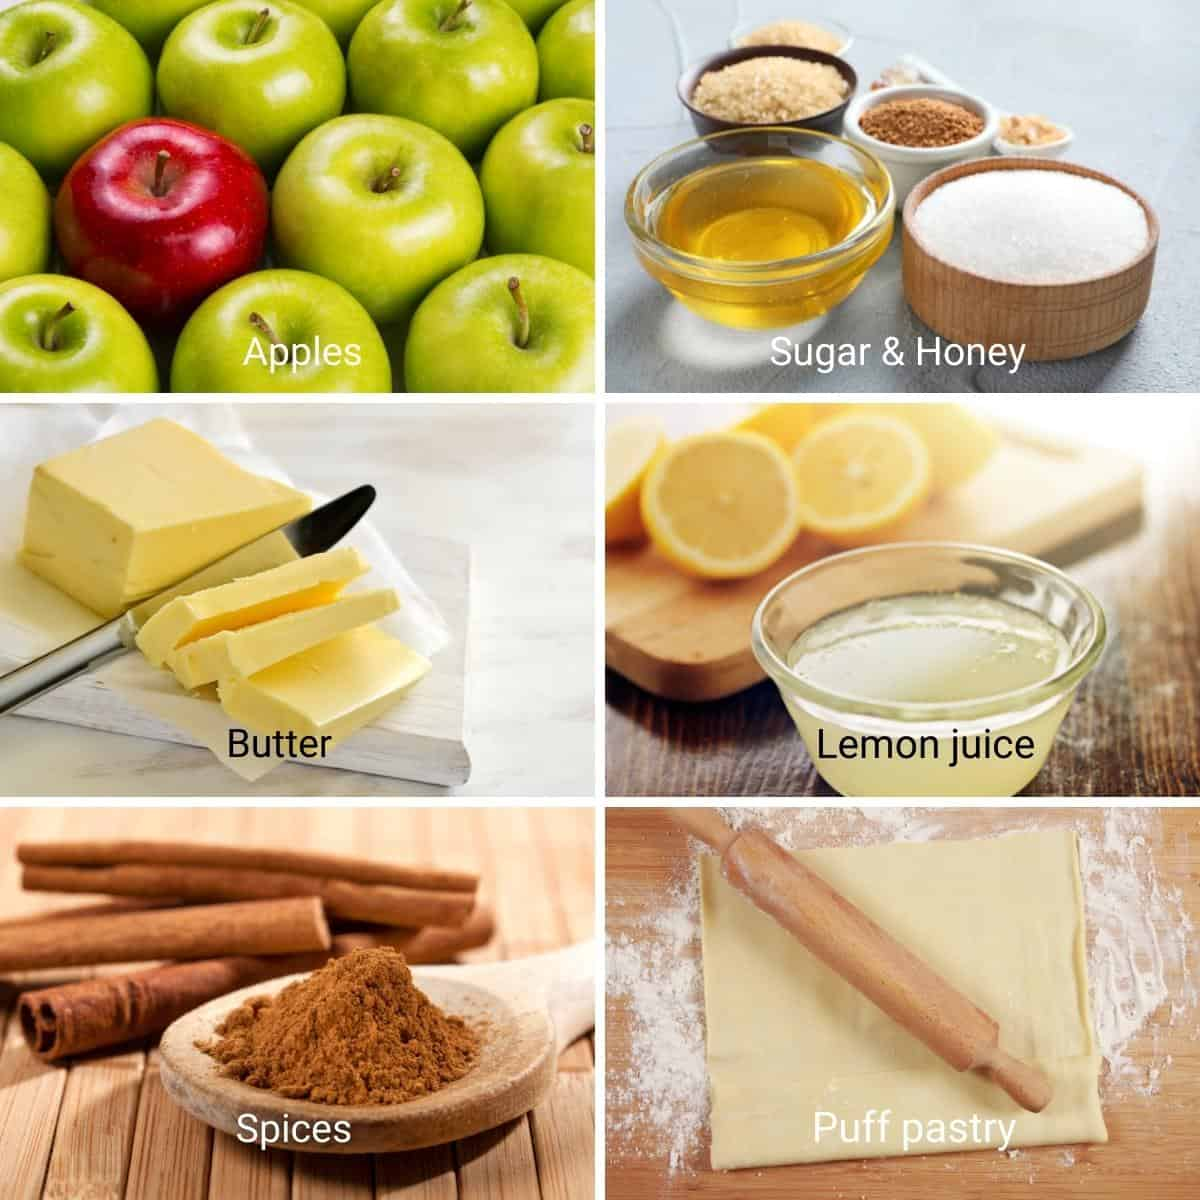 Ingredients for tarte tatin with apples.